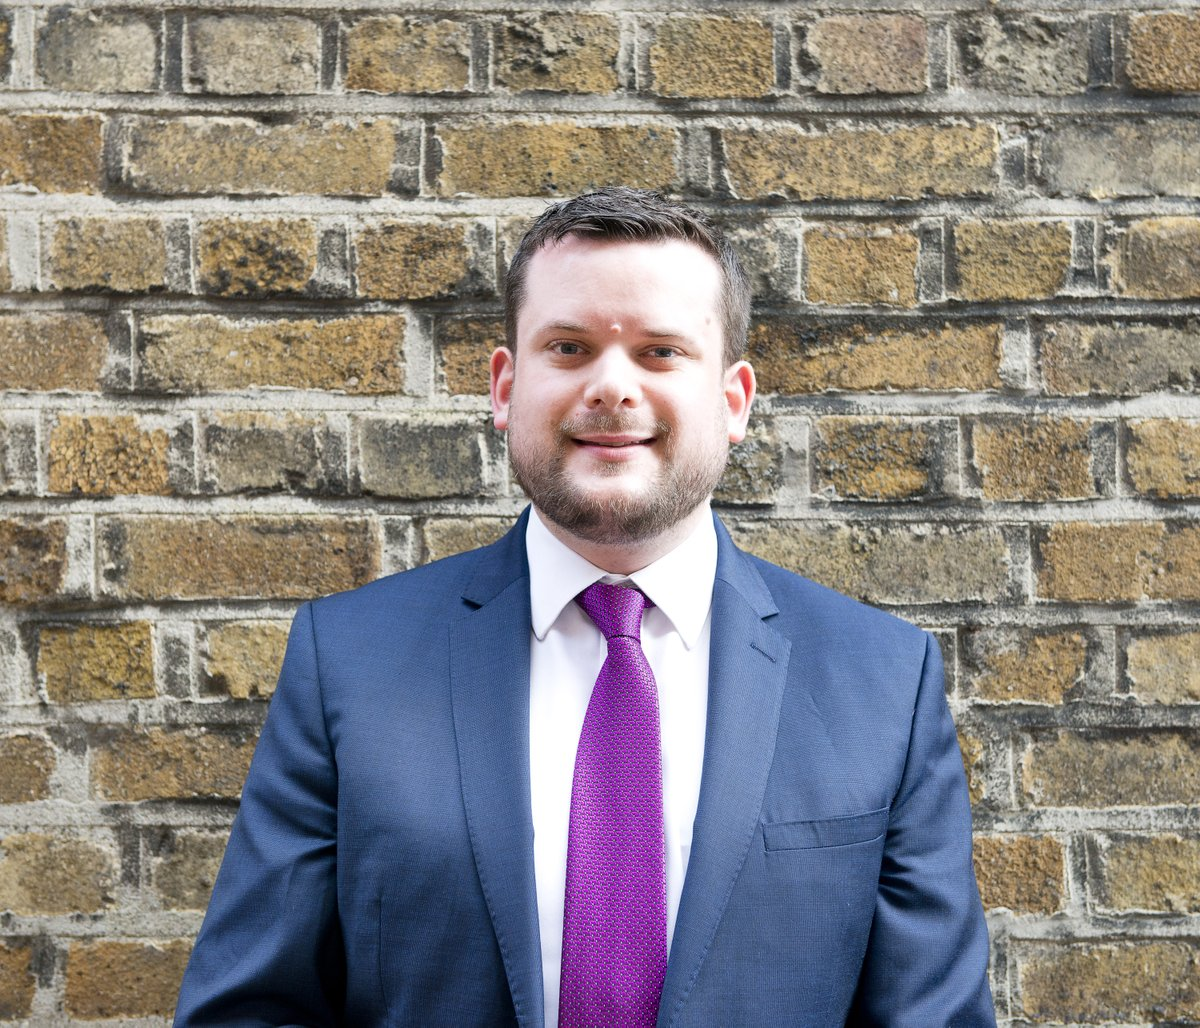 Today we say goodbye to our colleague @brianmcollins who is moving to an exciting position at @_IHREC.  Brian has been an essential part of @IrcLawcentre since 2012.  While he may not say it, his legal work has changed people's lives, helping them to be safe from persecution. https://t.co/t5RyBUPCv5